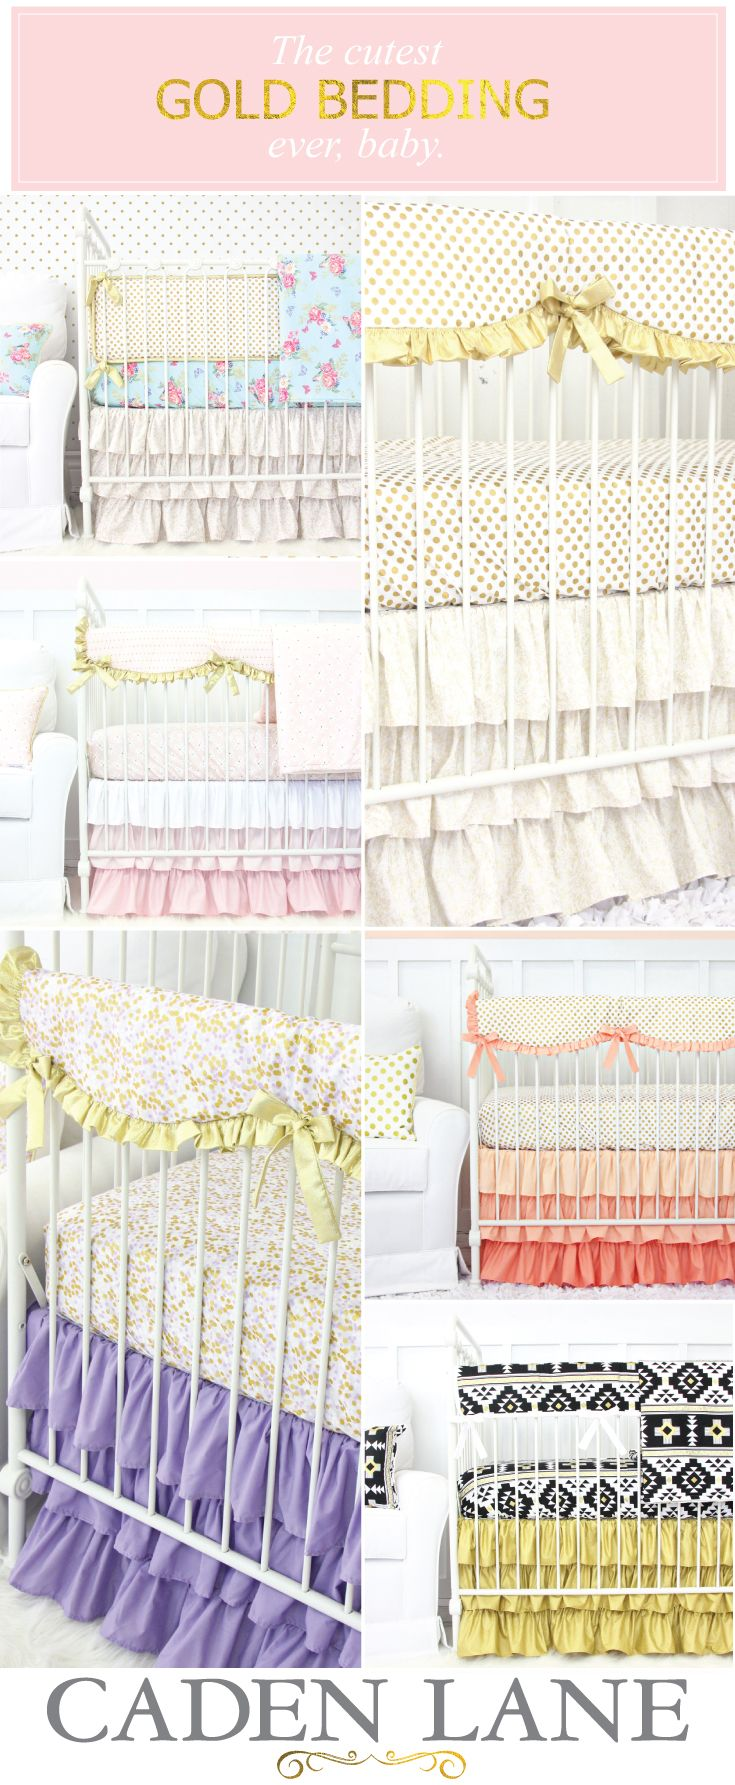 Looking for Gold Crib Bedding? We've got you covered! Shop Gold Nursery Bedding and start designing your dream nursery.